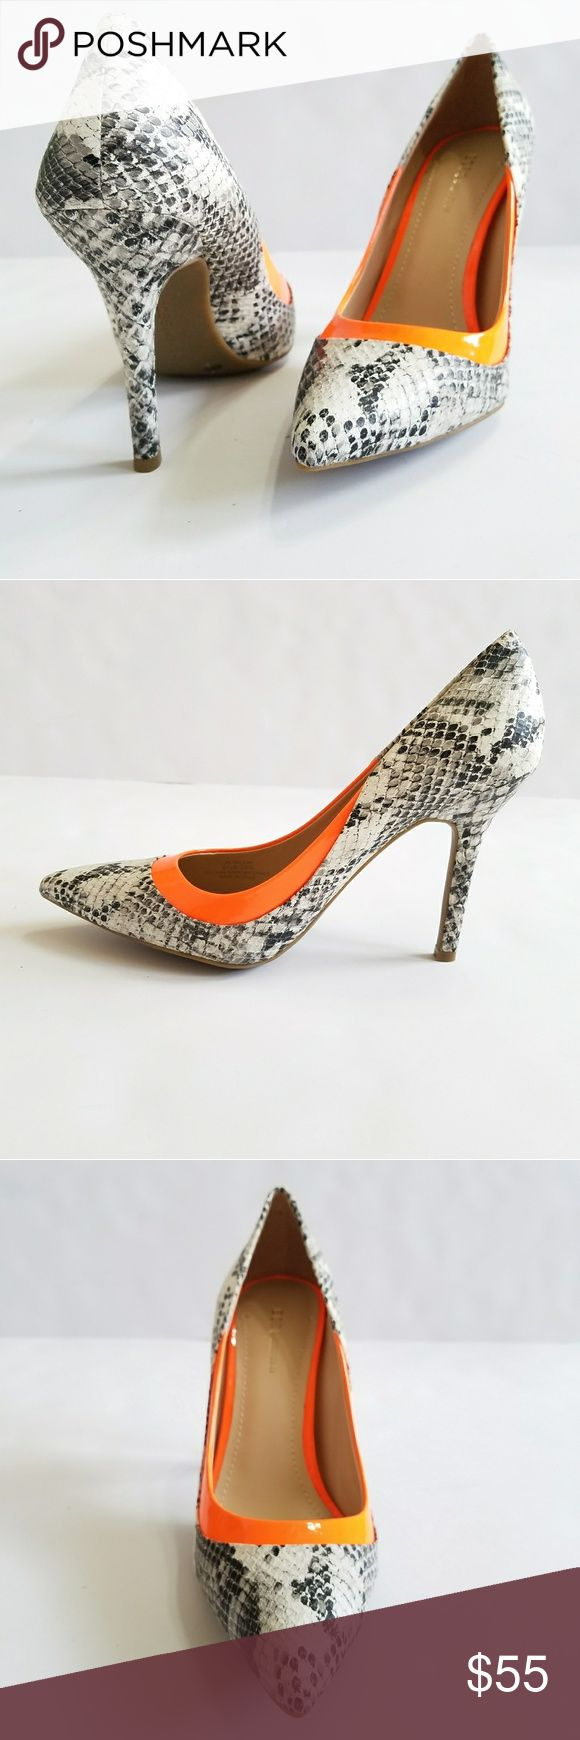 Markdown BCGGeneration Snakeskin & Neon Pumps BRAND NEW! BCGGeneration Snakeskin & Neon Stripe Pumps 6 1/2  Be prepared to get all the attention with these snakeskin print pointy toe pumps with an unexpected and edgy orange stripe.  Style: Delliah. 4 inches heel. BCBGeneration Shoes Heels